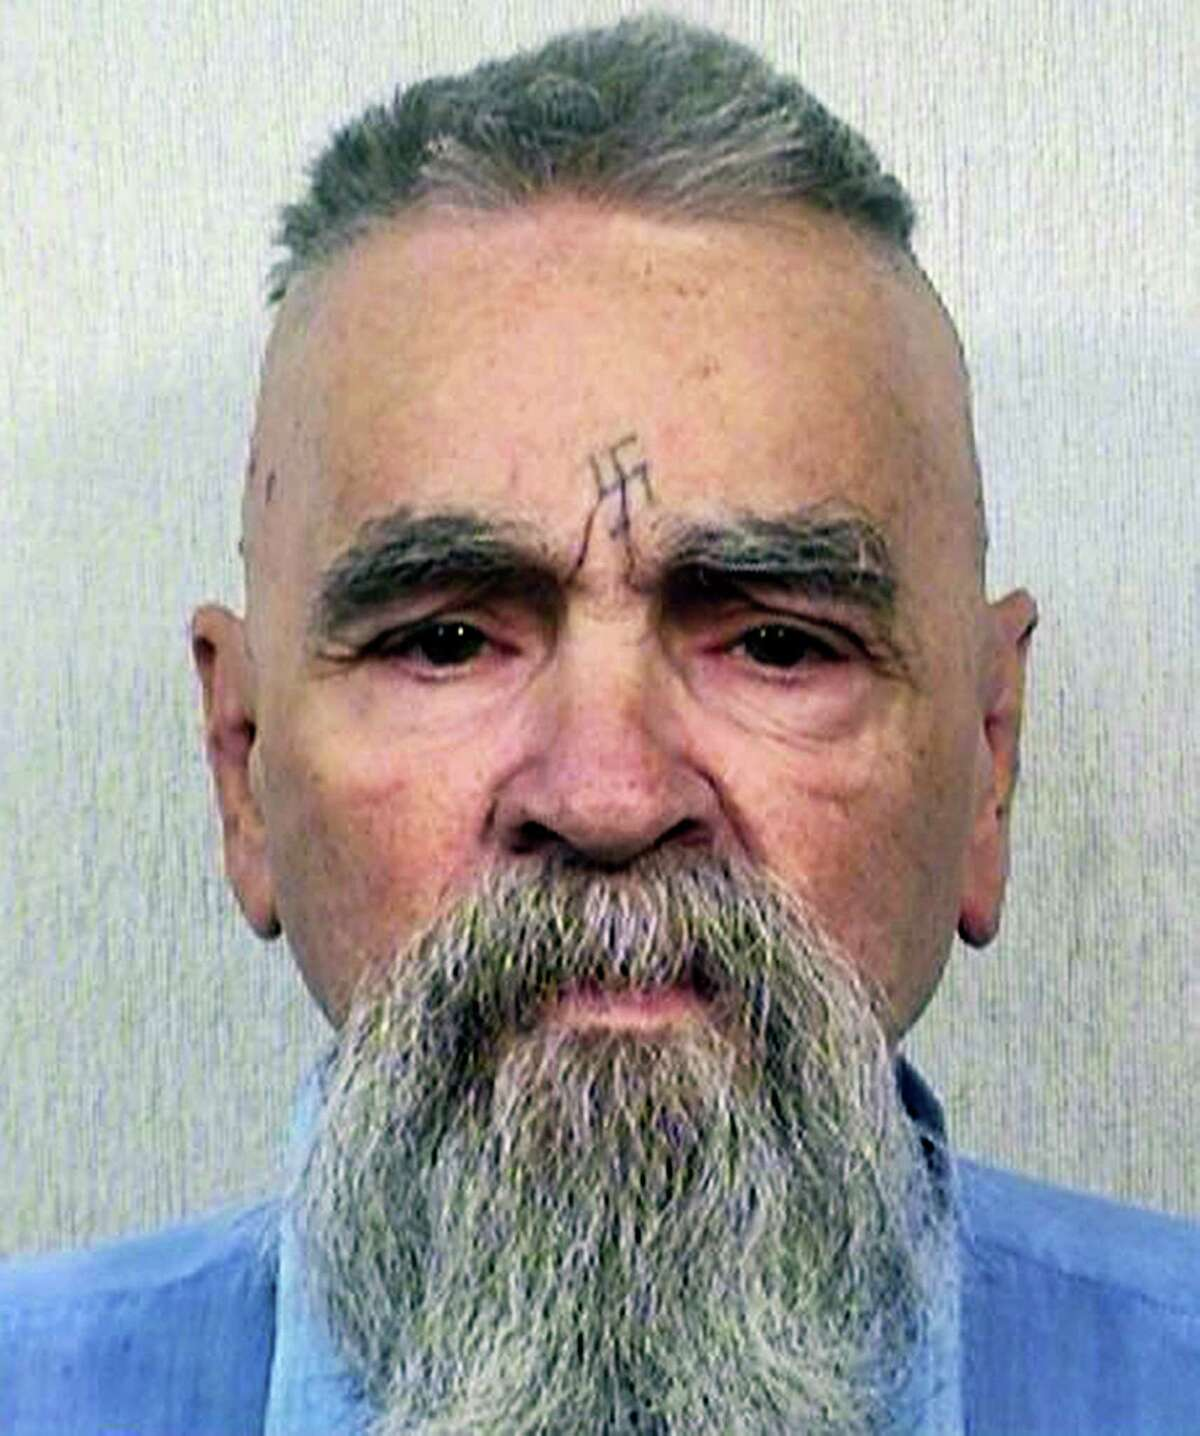 This Oct. 8, 2014, file photo provided by the California Department of Corrections and Rehabilitation shows serial killer Charles Manson. California prison official says cult killer Manson is alive following reports that he was hospitalized on Tuesday, Jan. 3, 2017.